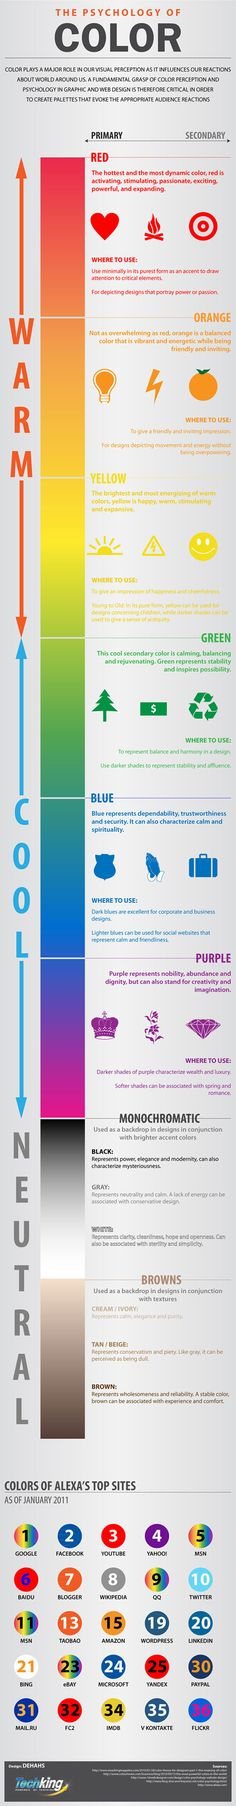 Color used in design examples. A good guide.